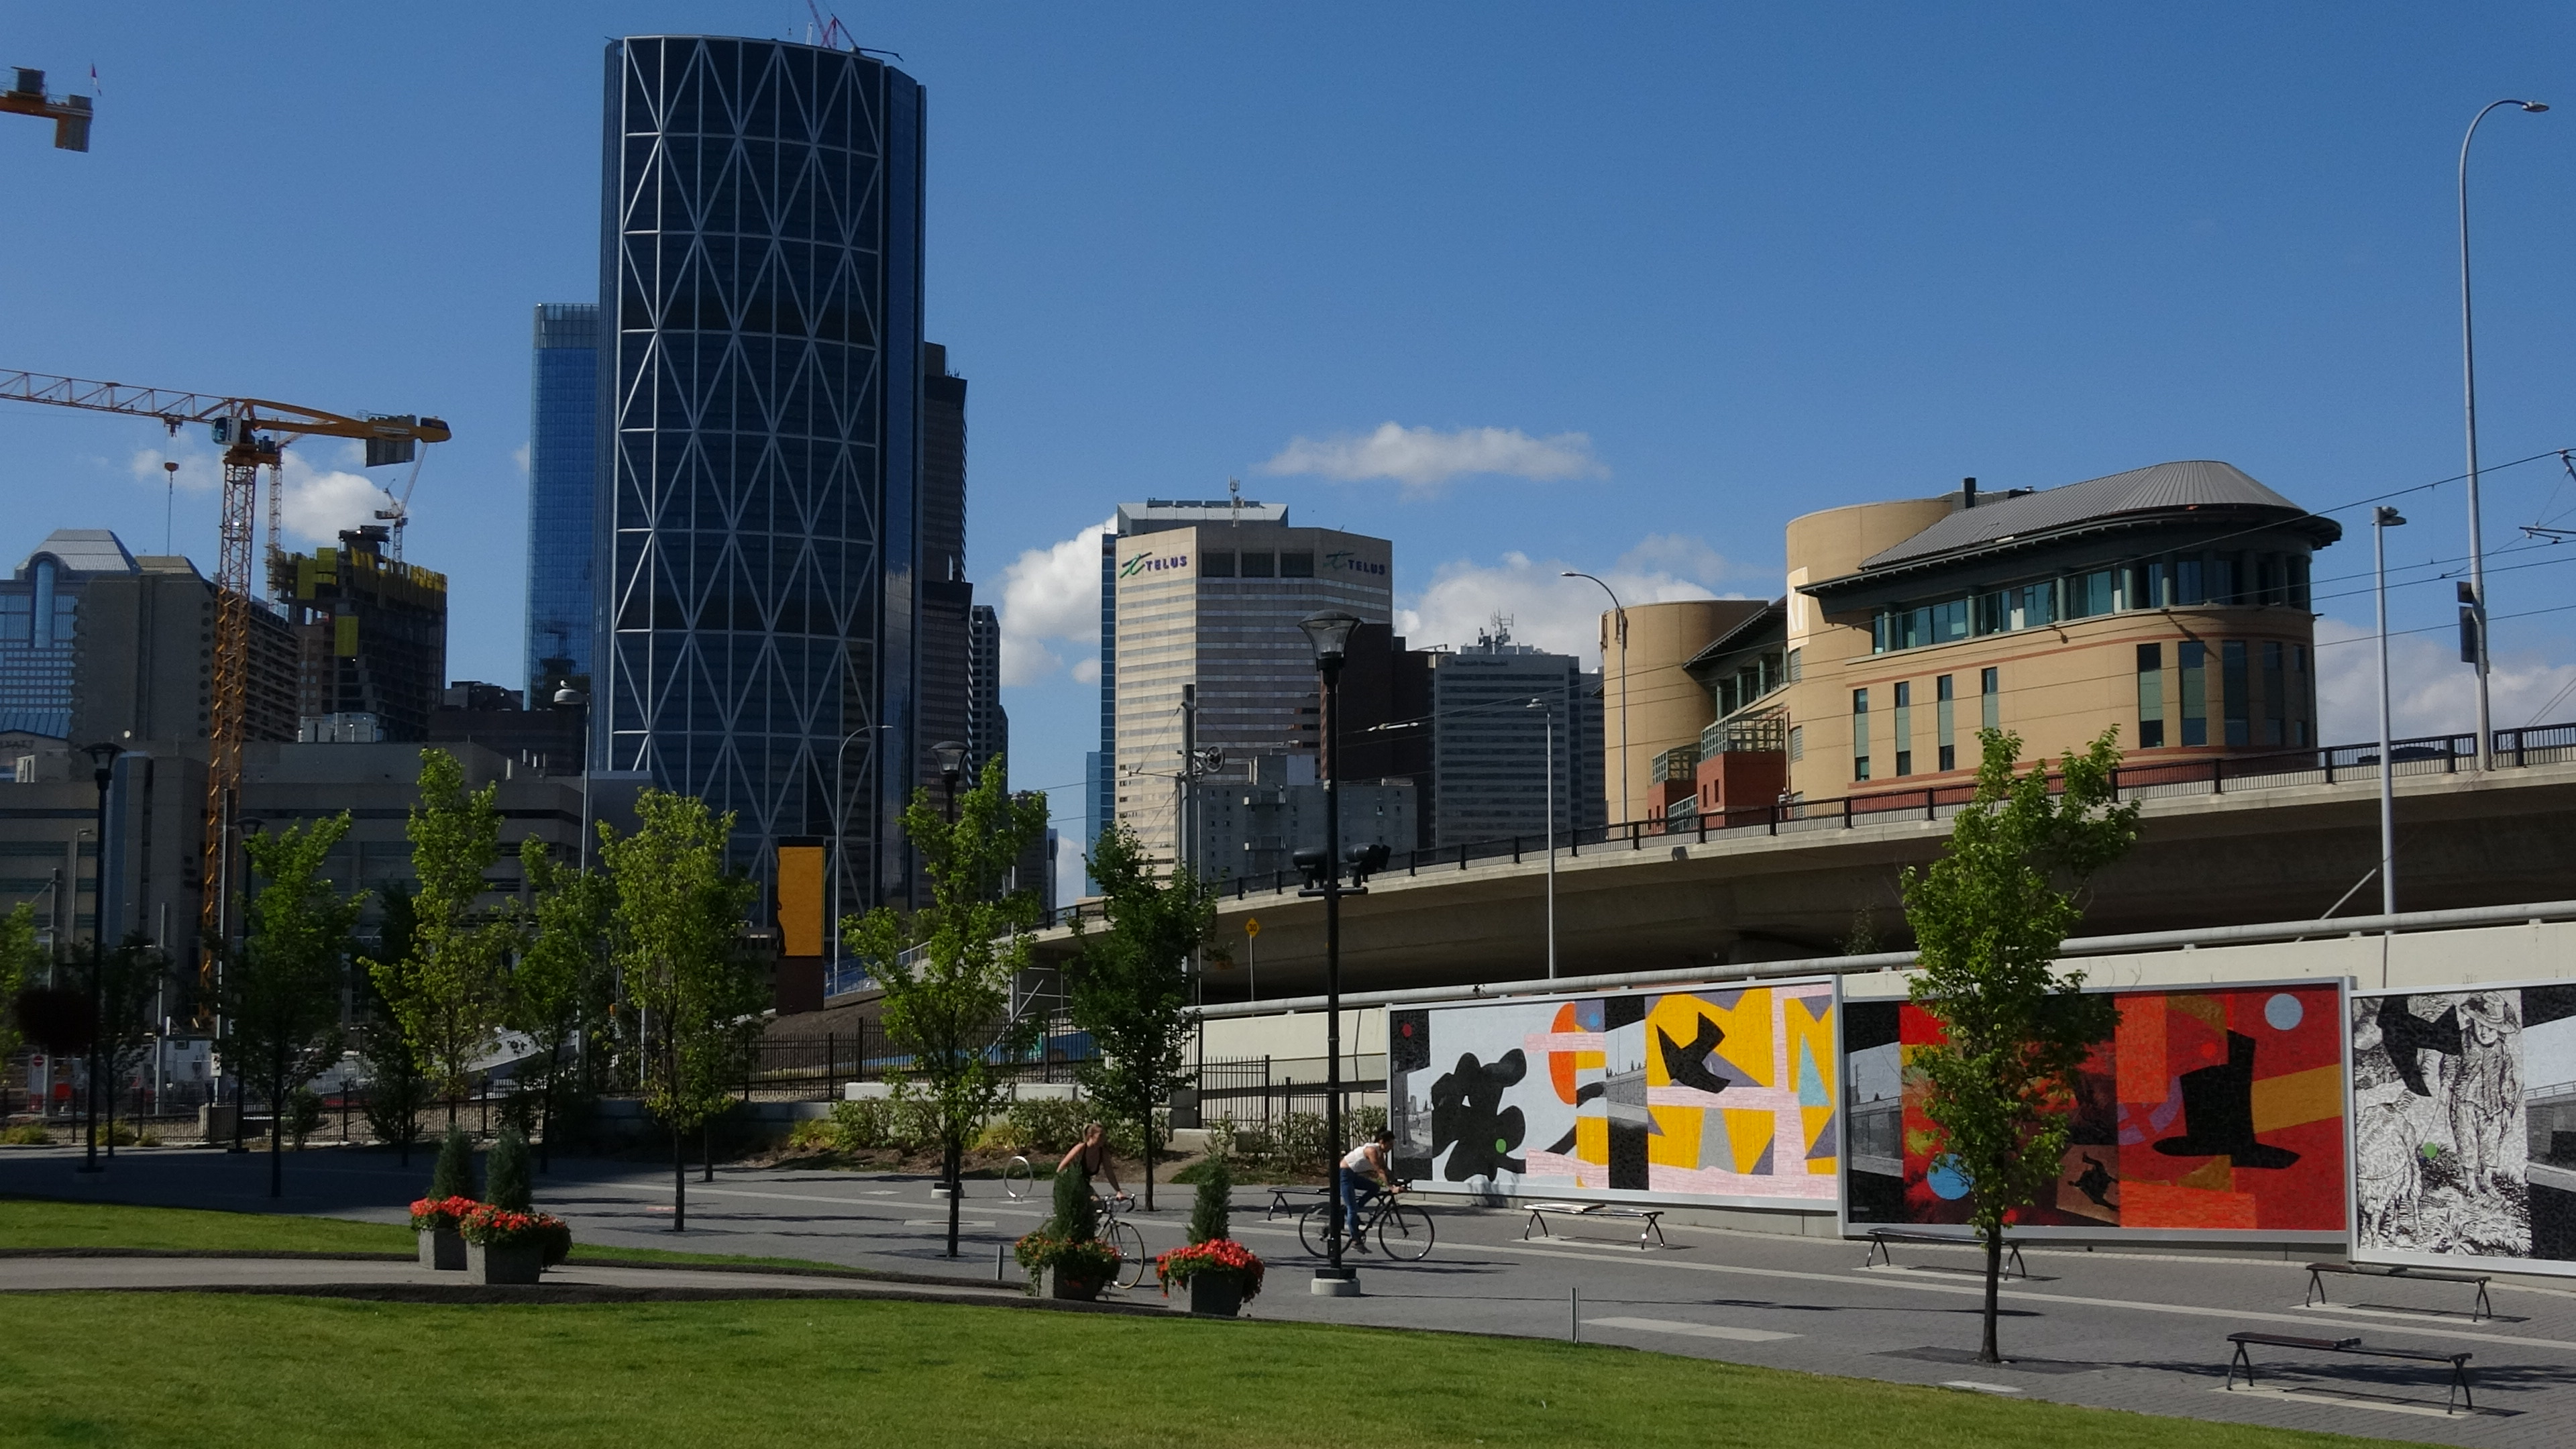 Shifting gear: the end of Calgary's oil boom